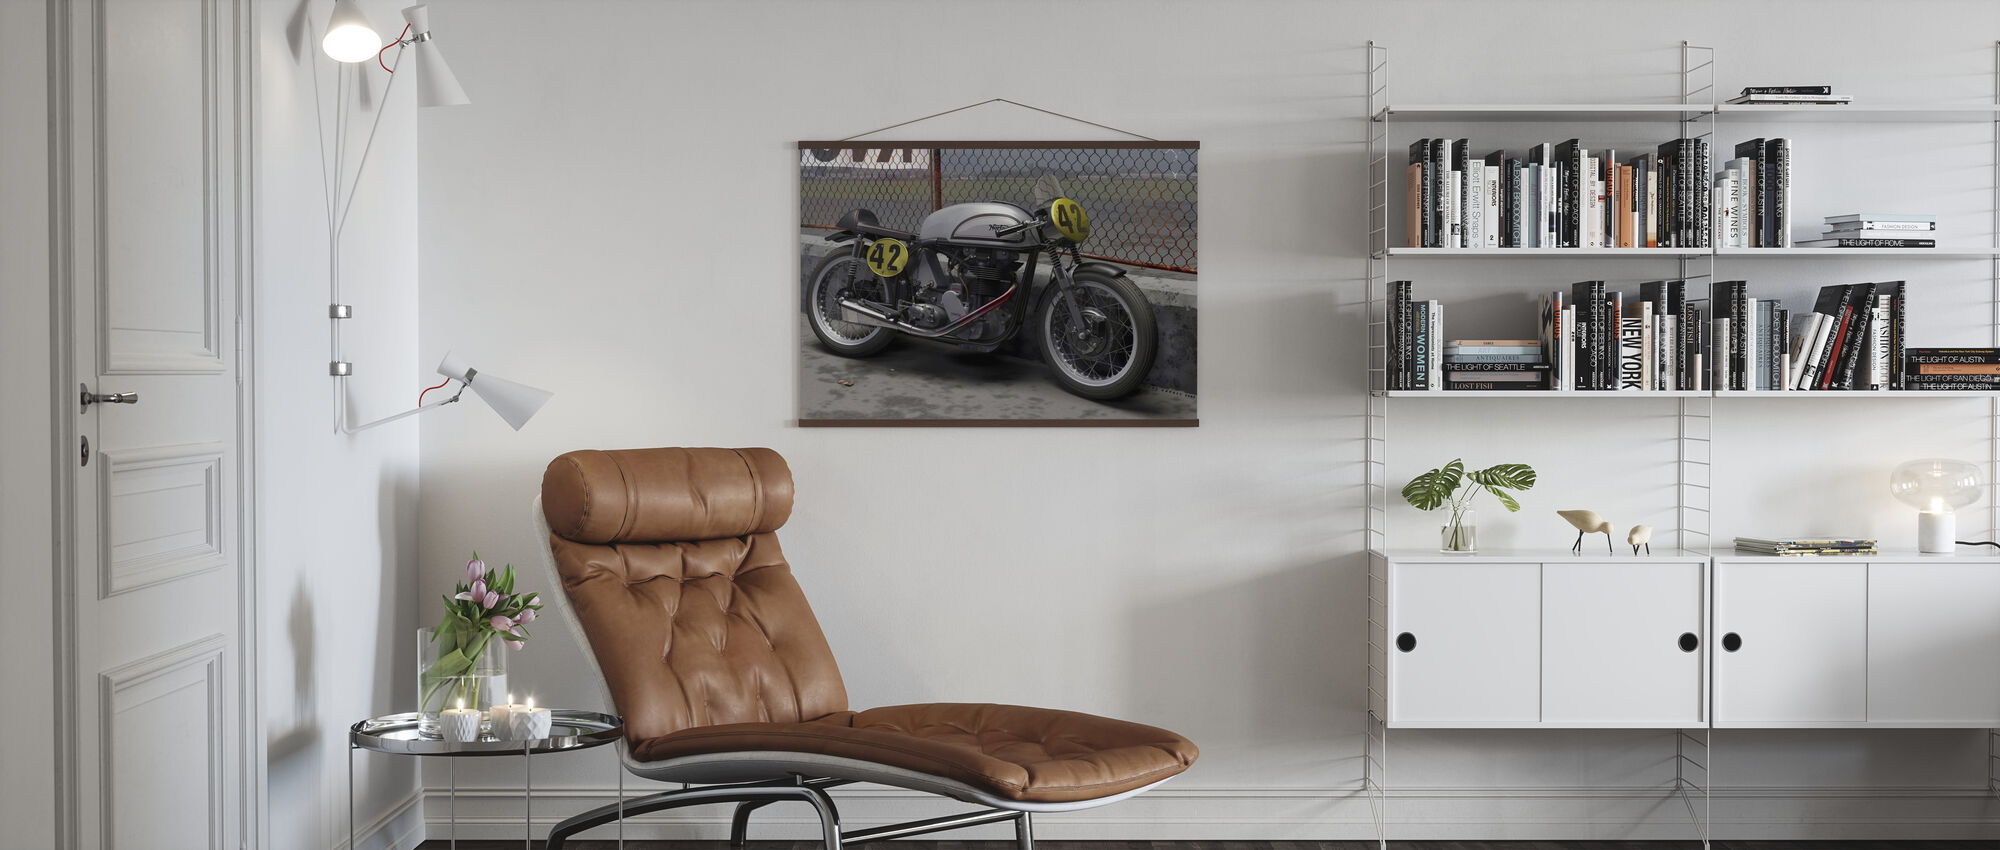 Motorcycle Final - Poster - Living Room